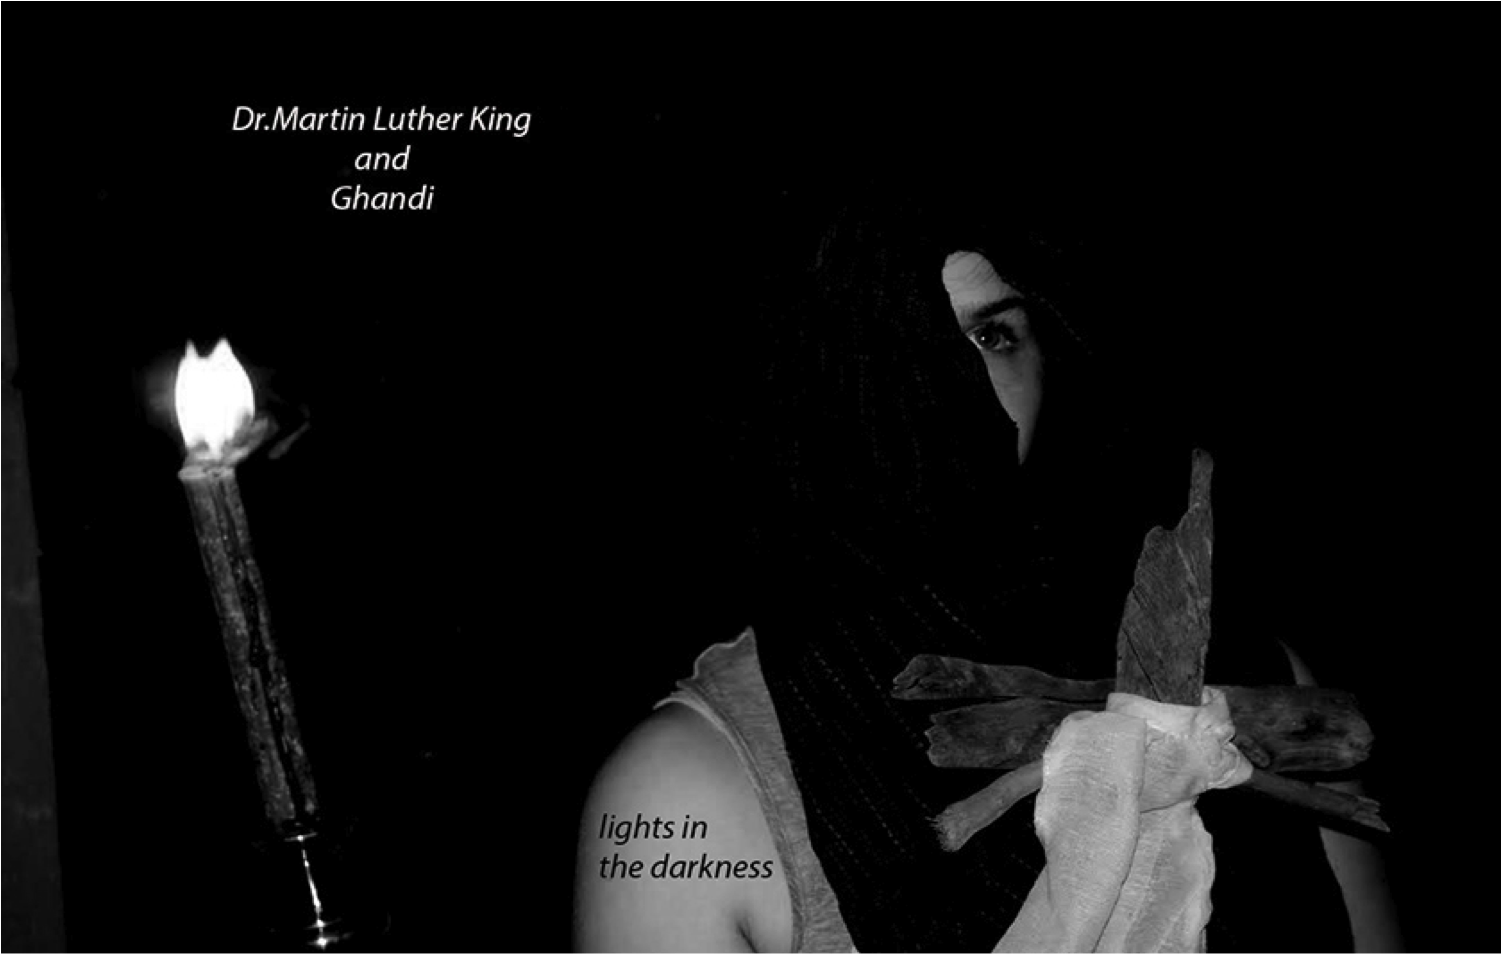 Lights in the Darkness by Mary Frances Lembke The Altamont School 11th grade